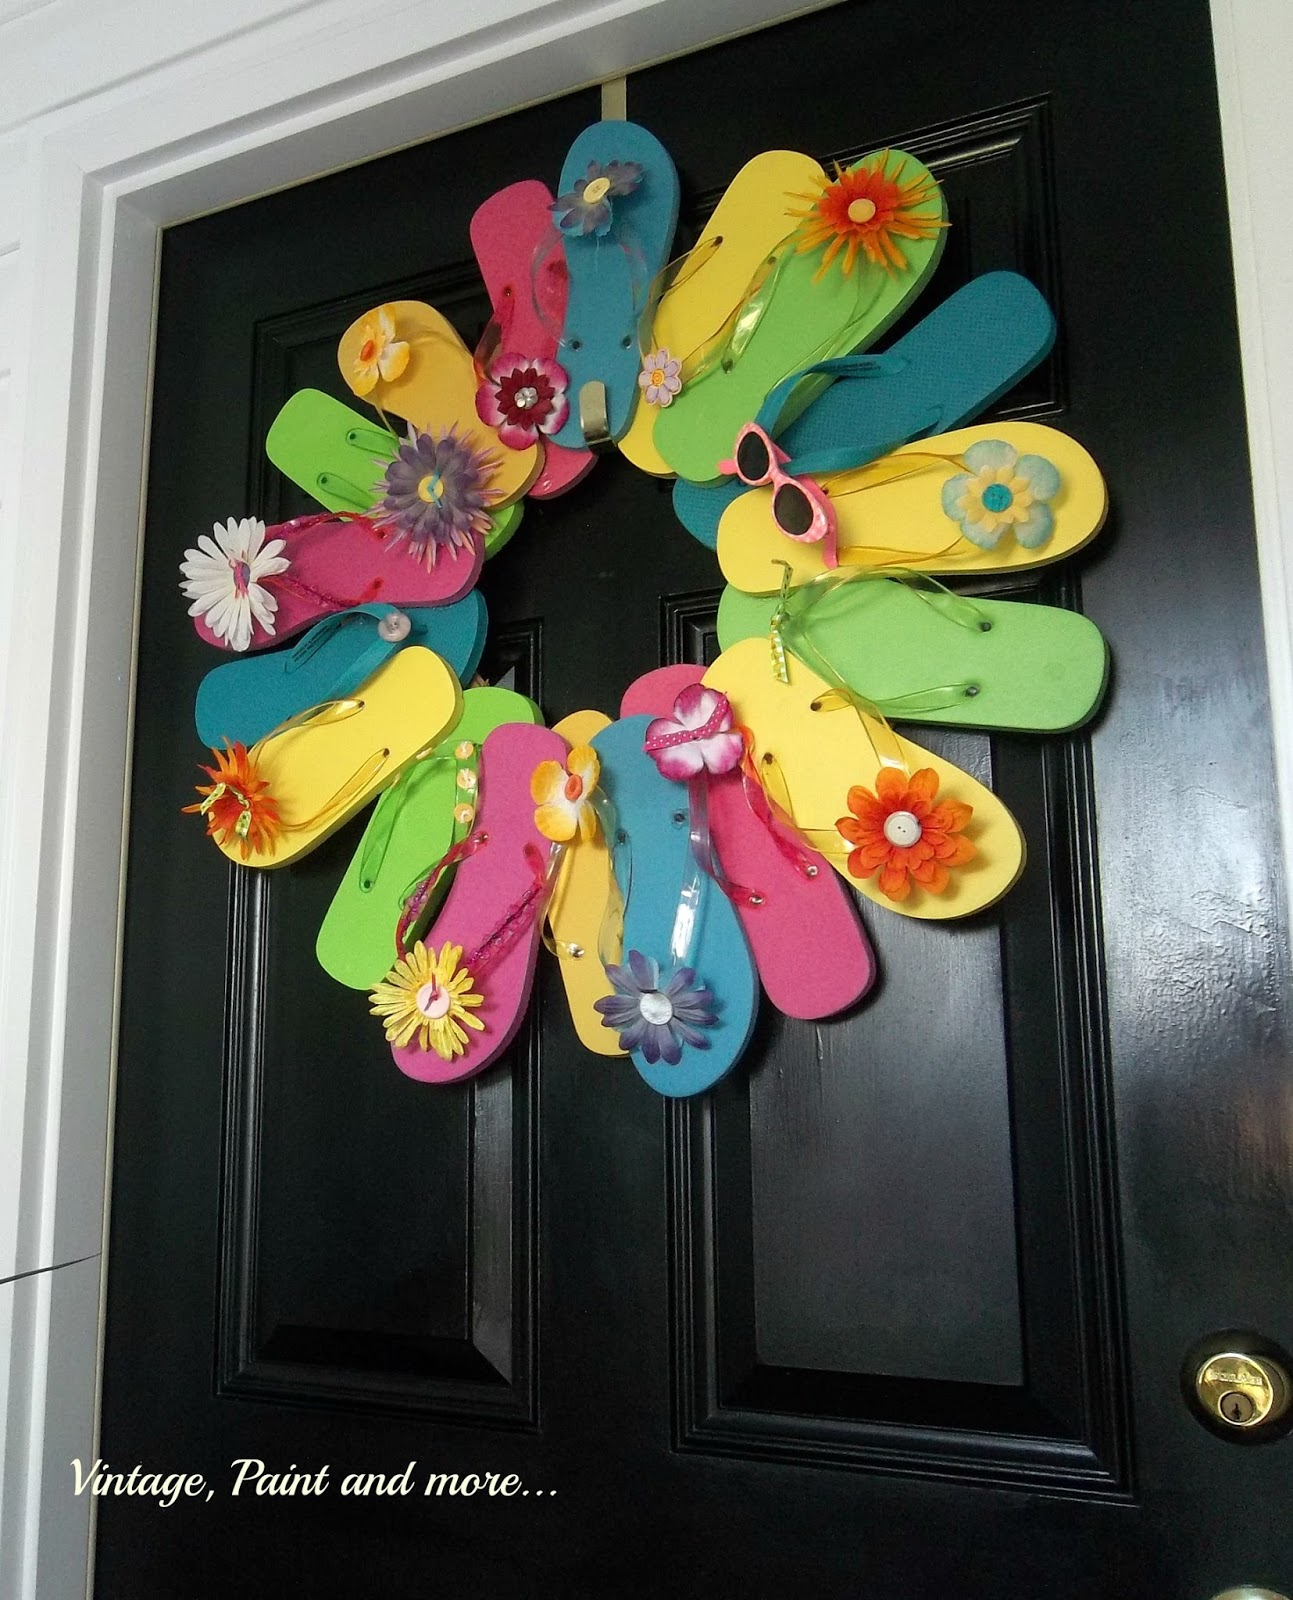 Vintage, Paint and more... flip flop wreath, wreath made from flip flops, flip flops used in a wreath